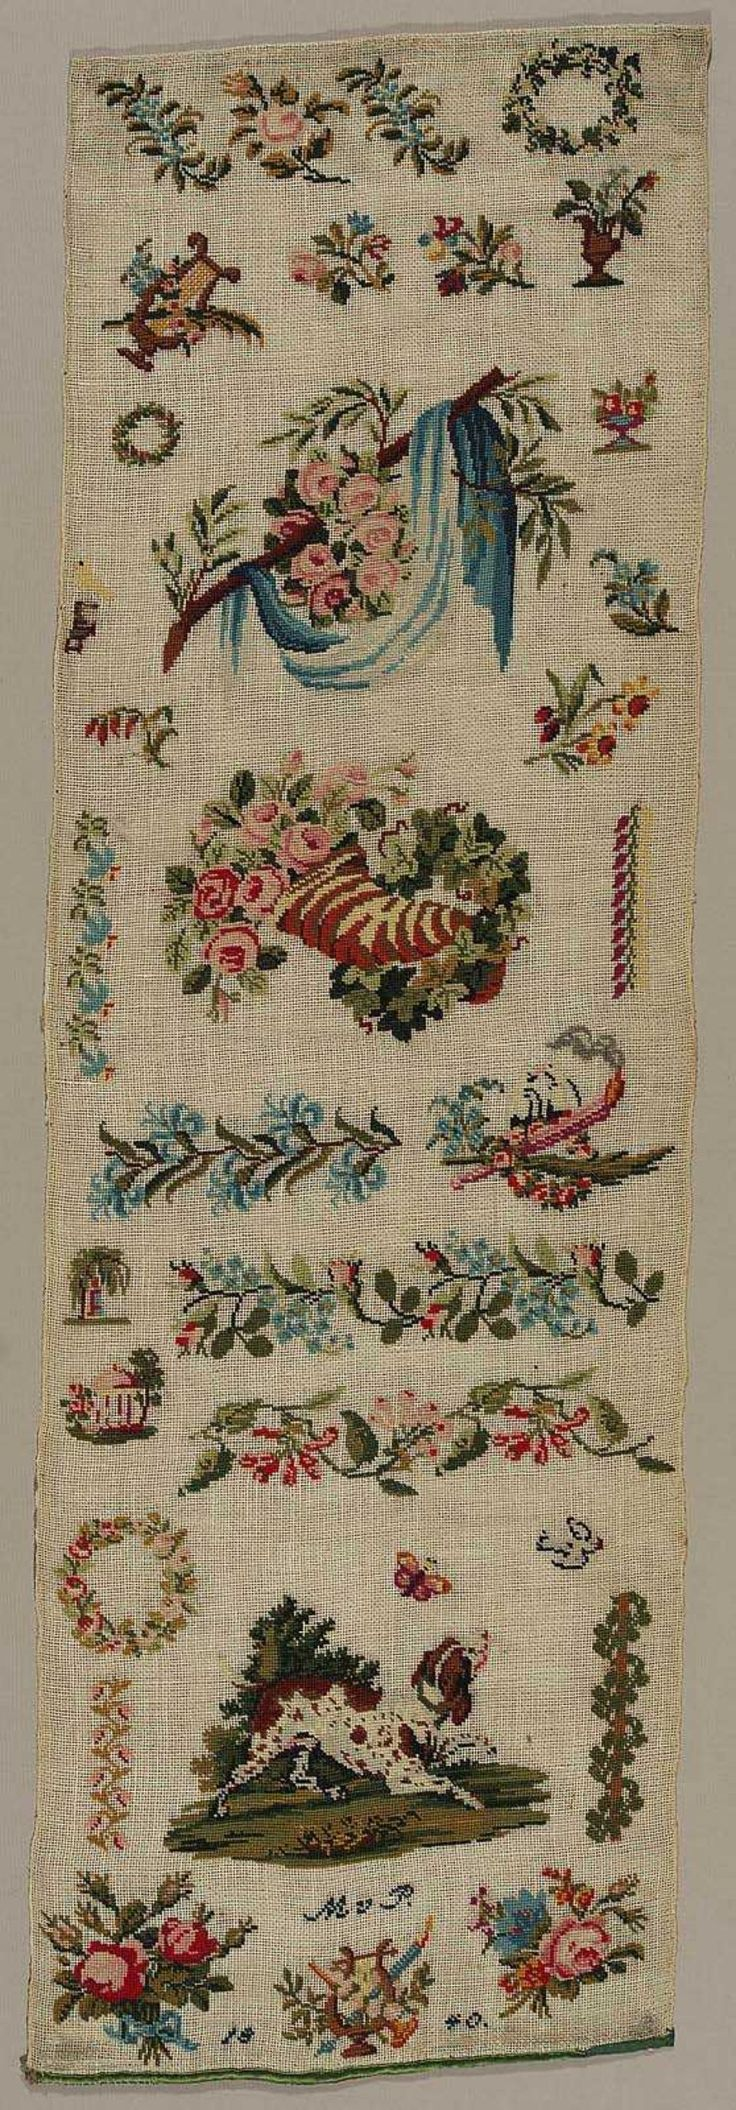 A Stunning German 19th Century Sampler Dated 1840